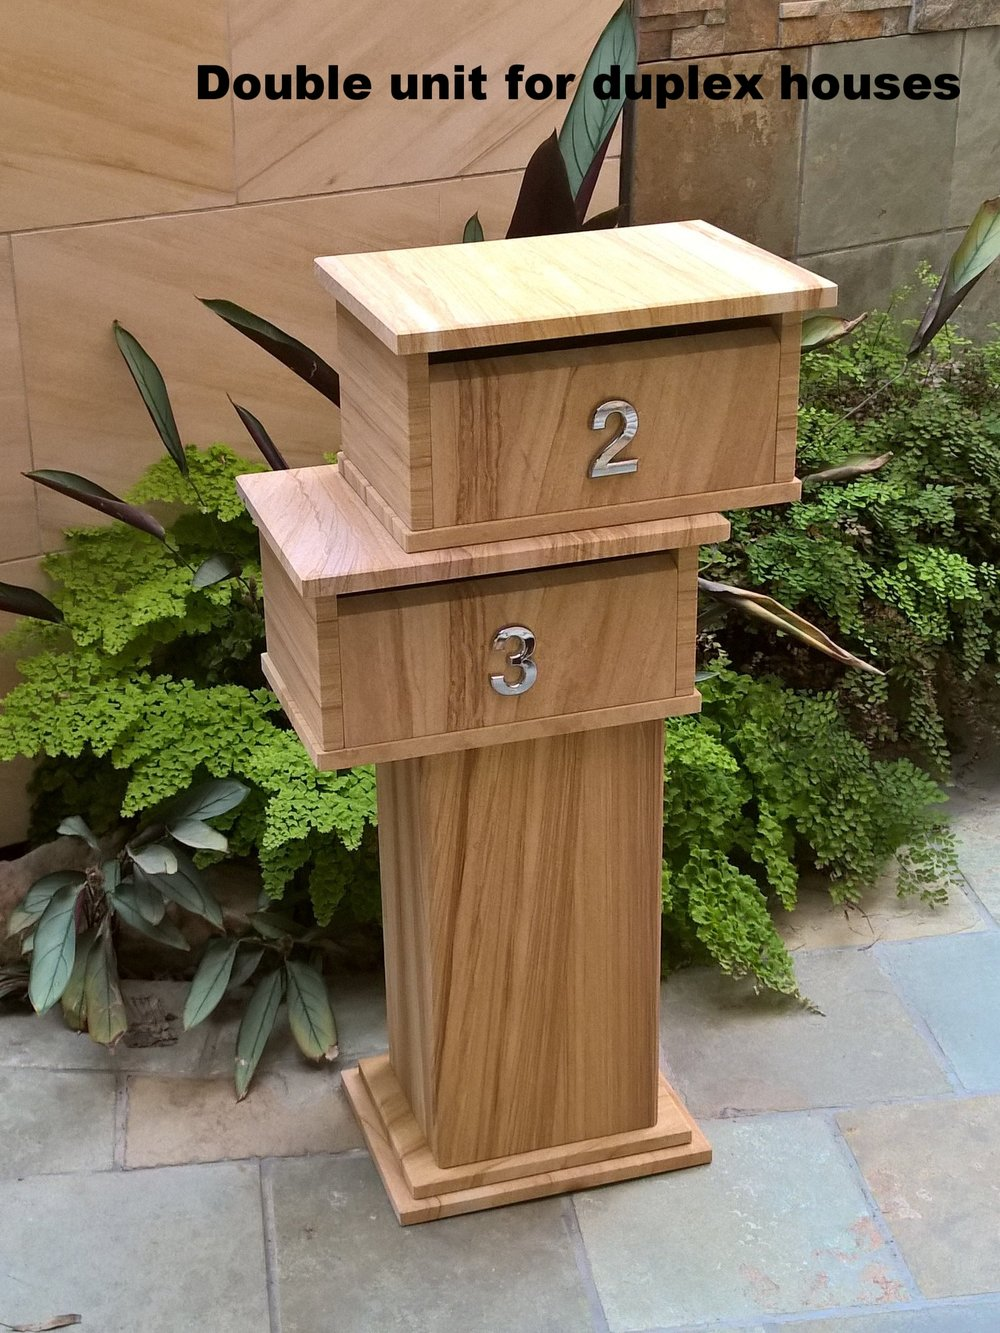 120. Dual Sandstone letterbox about 1000mm high fit A4 envelopes. Cost $680